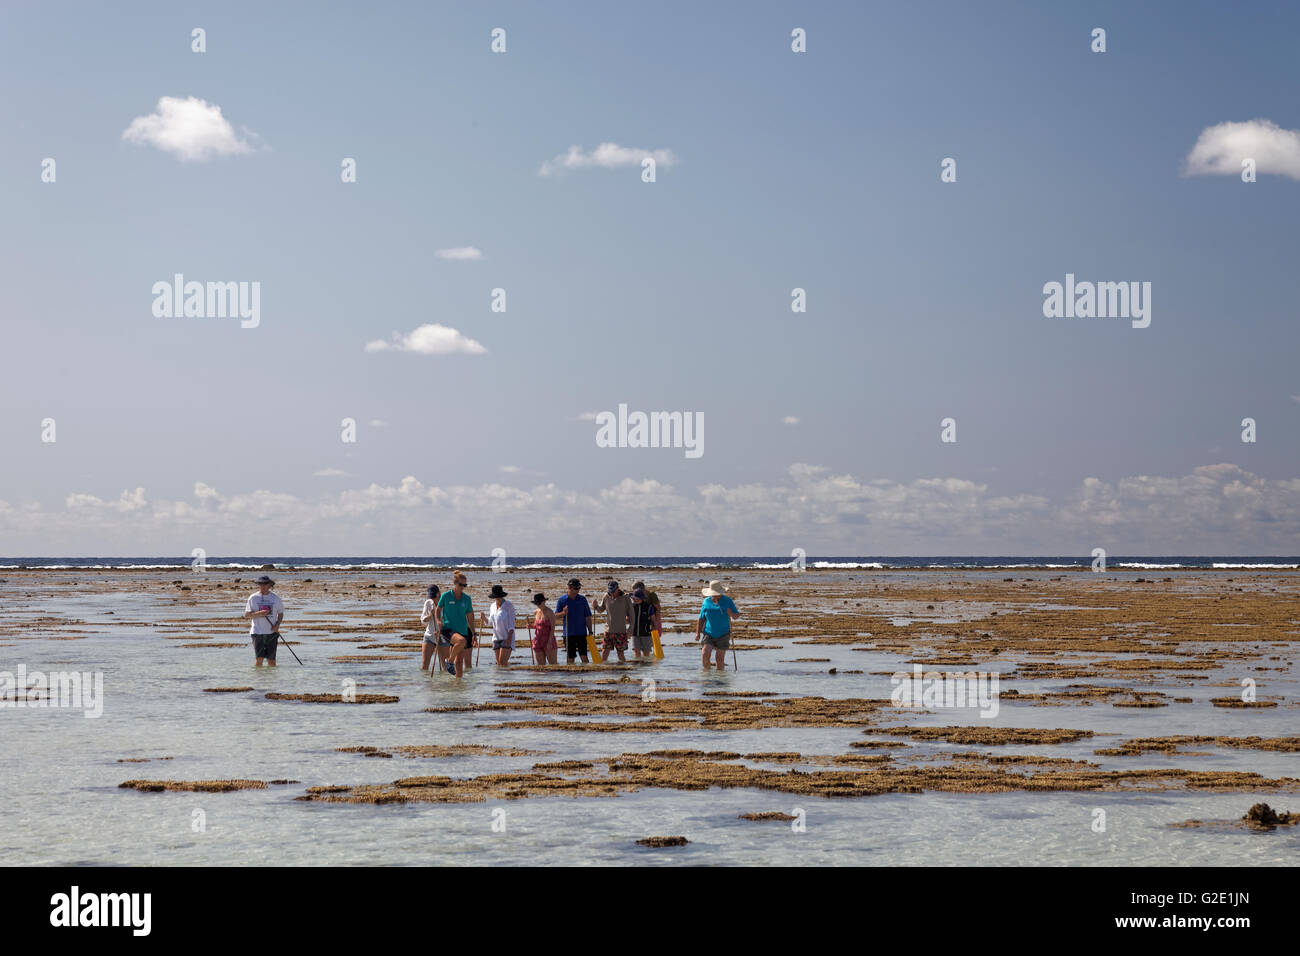 Tourists observe animals in rockpools, at low tide on reef top, Lady Elliot Island, Queensland, Pacific, Australia - Stock Image